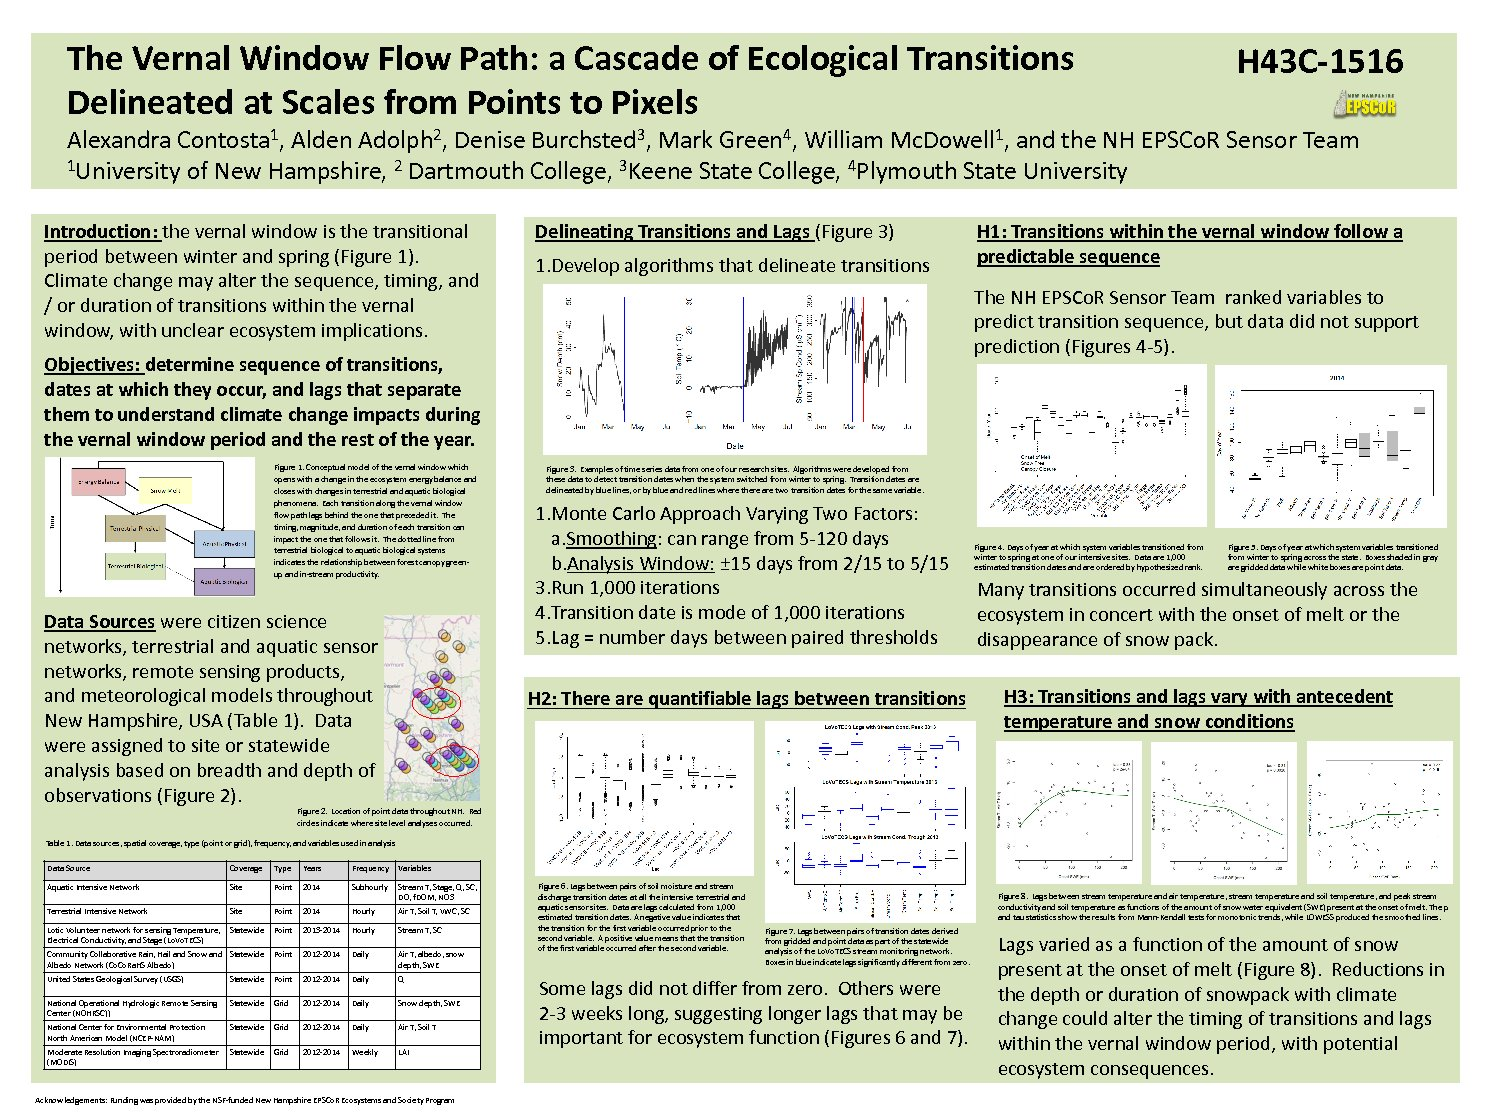 The Vernal Window Flow Path: A Cascade Of Ecological Transitions  Delineated At Scales From Points To Pixels by Contosta